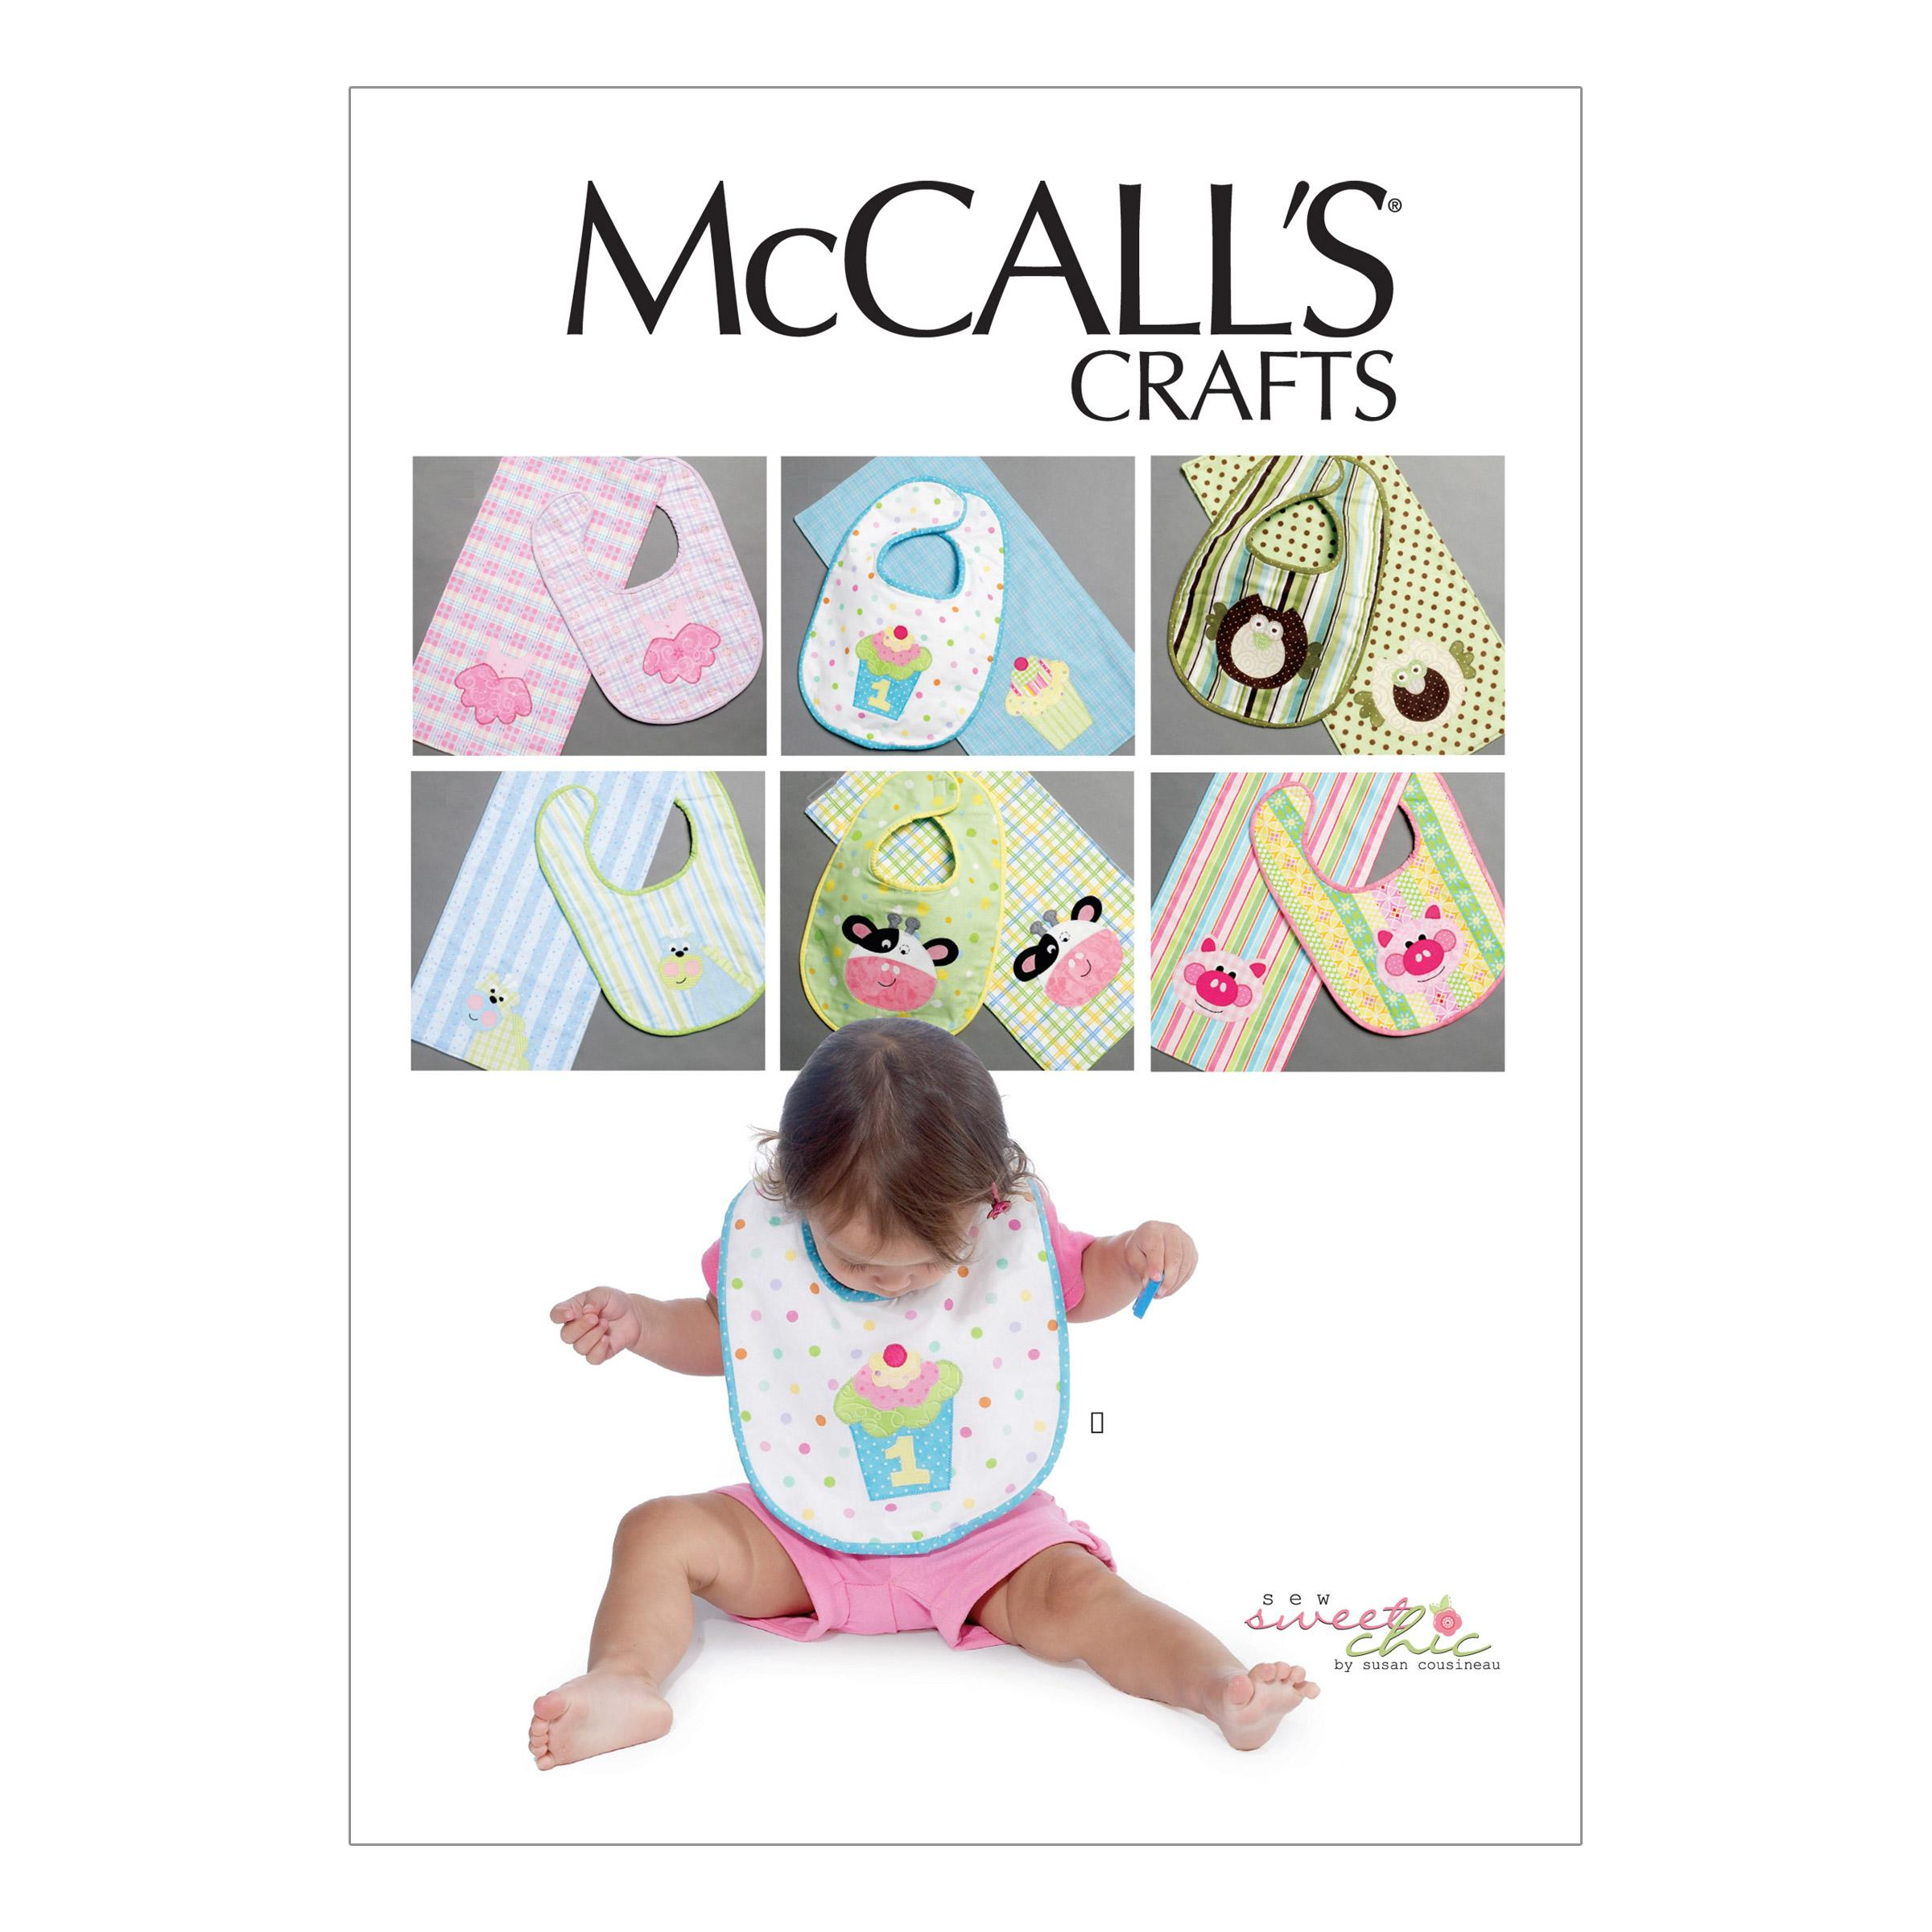 McCalls M6478 Crafts/Dolls/Pets, Infants/Toddlers